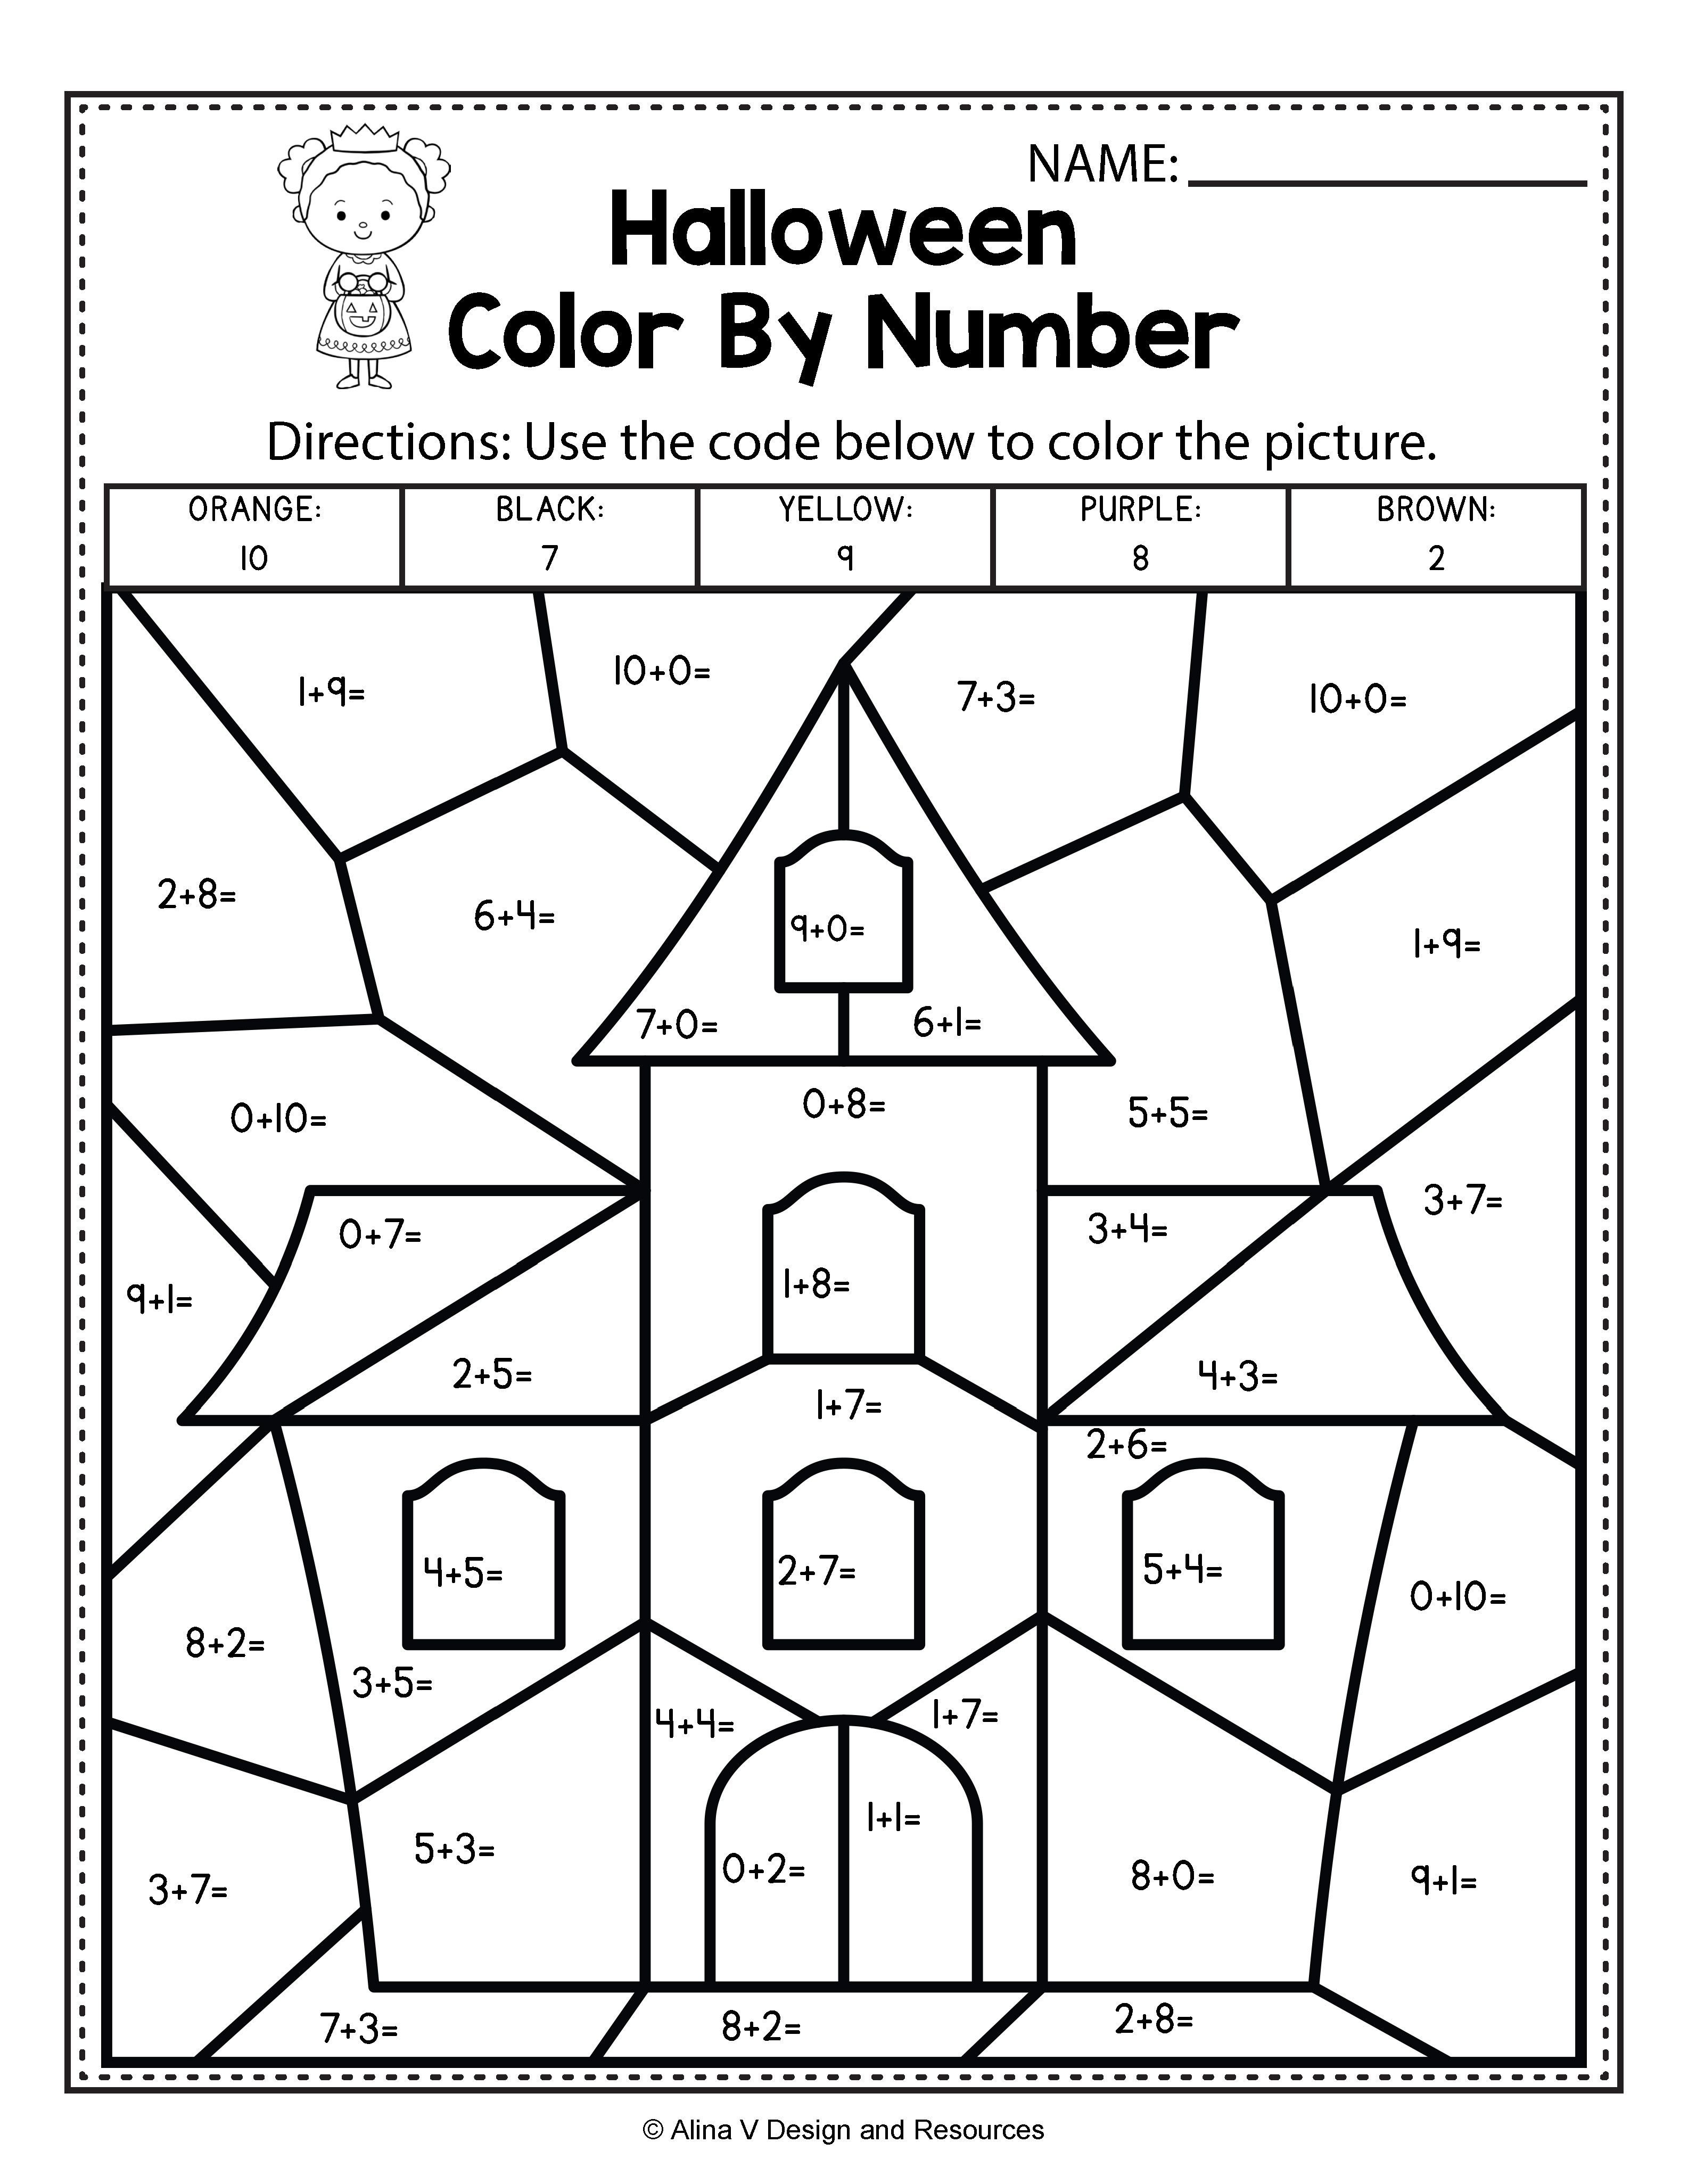 Halloween Math Literacy Activities For Kindergarten 1st Grade And Preschool Is Fun With This C Halloween Math Worksheets Halloween Worksheets Halloween Math